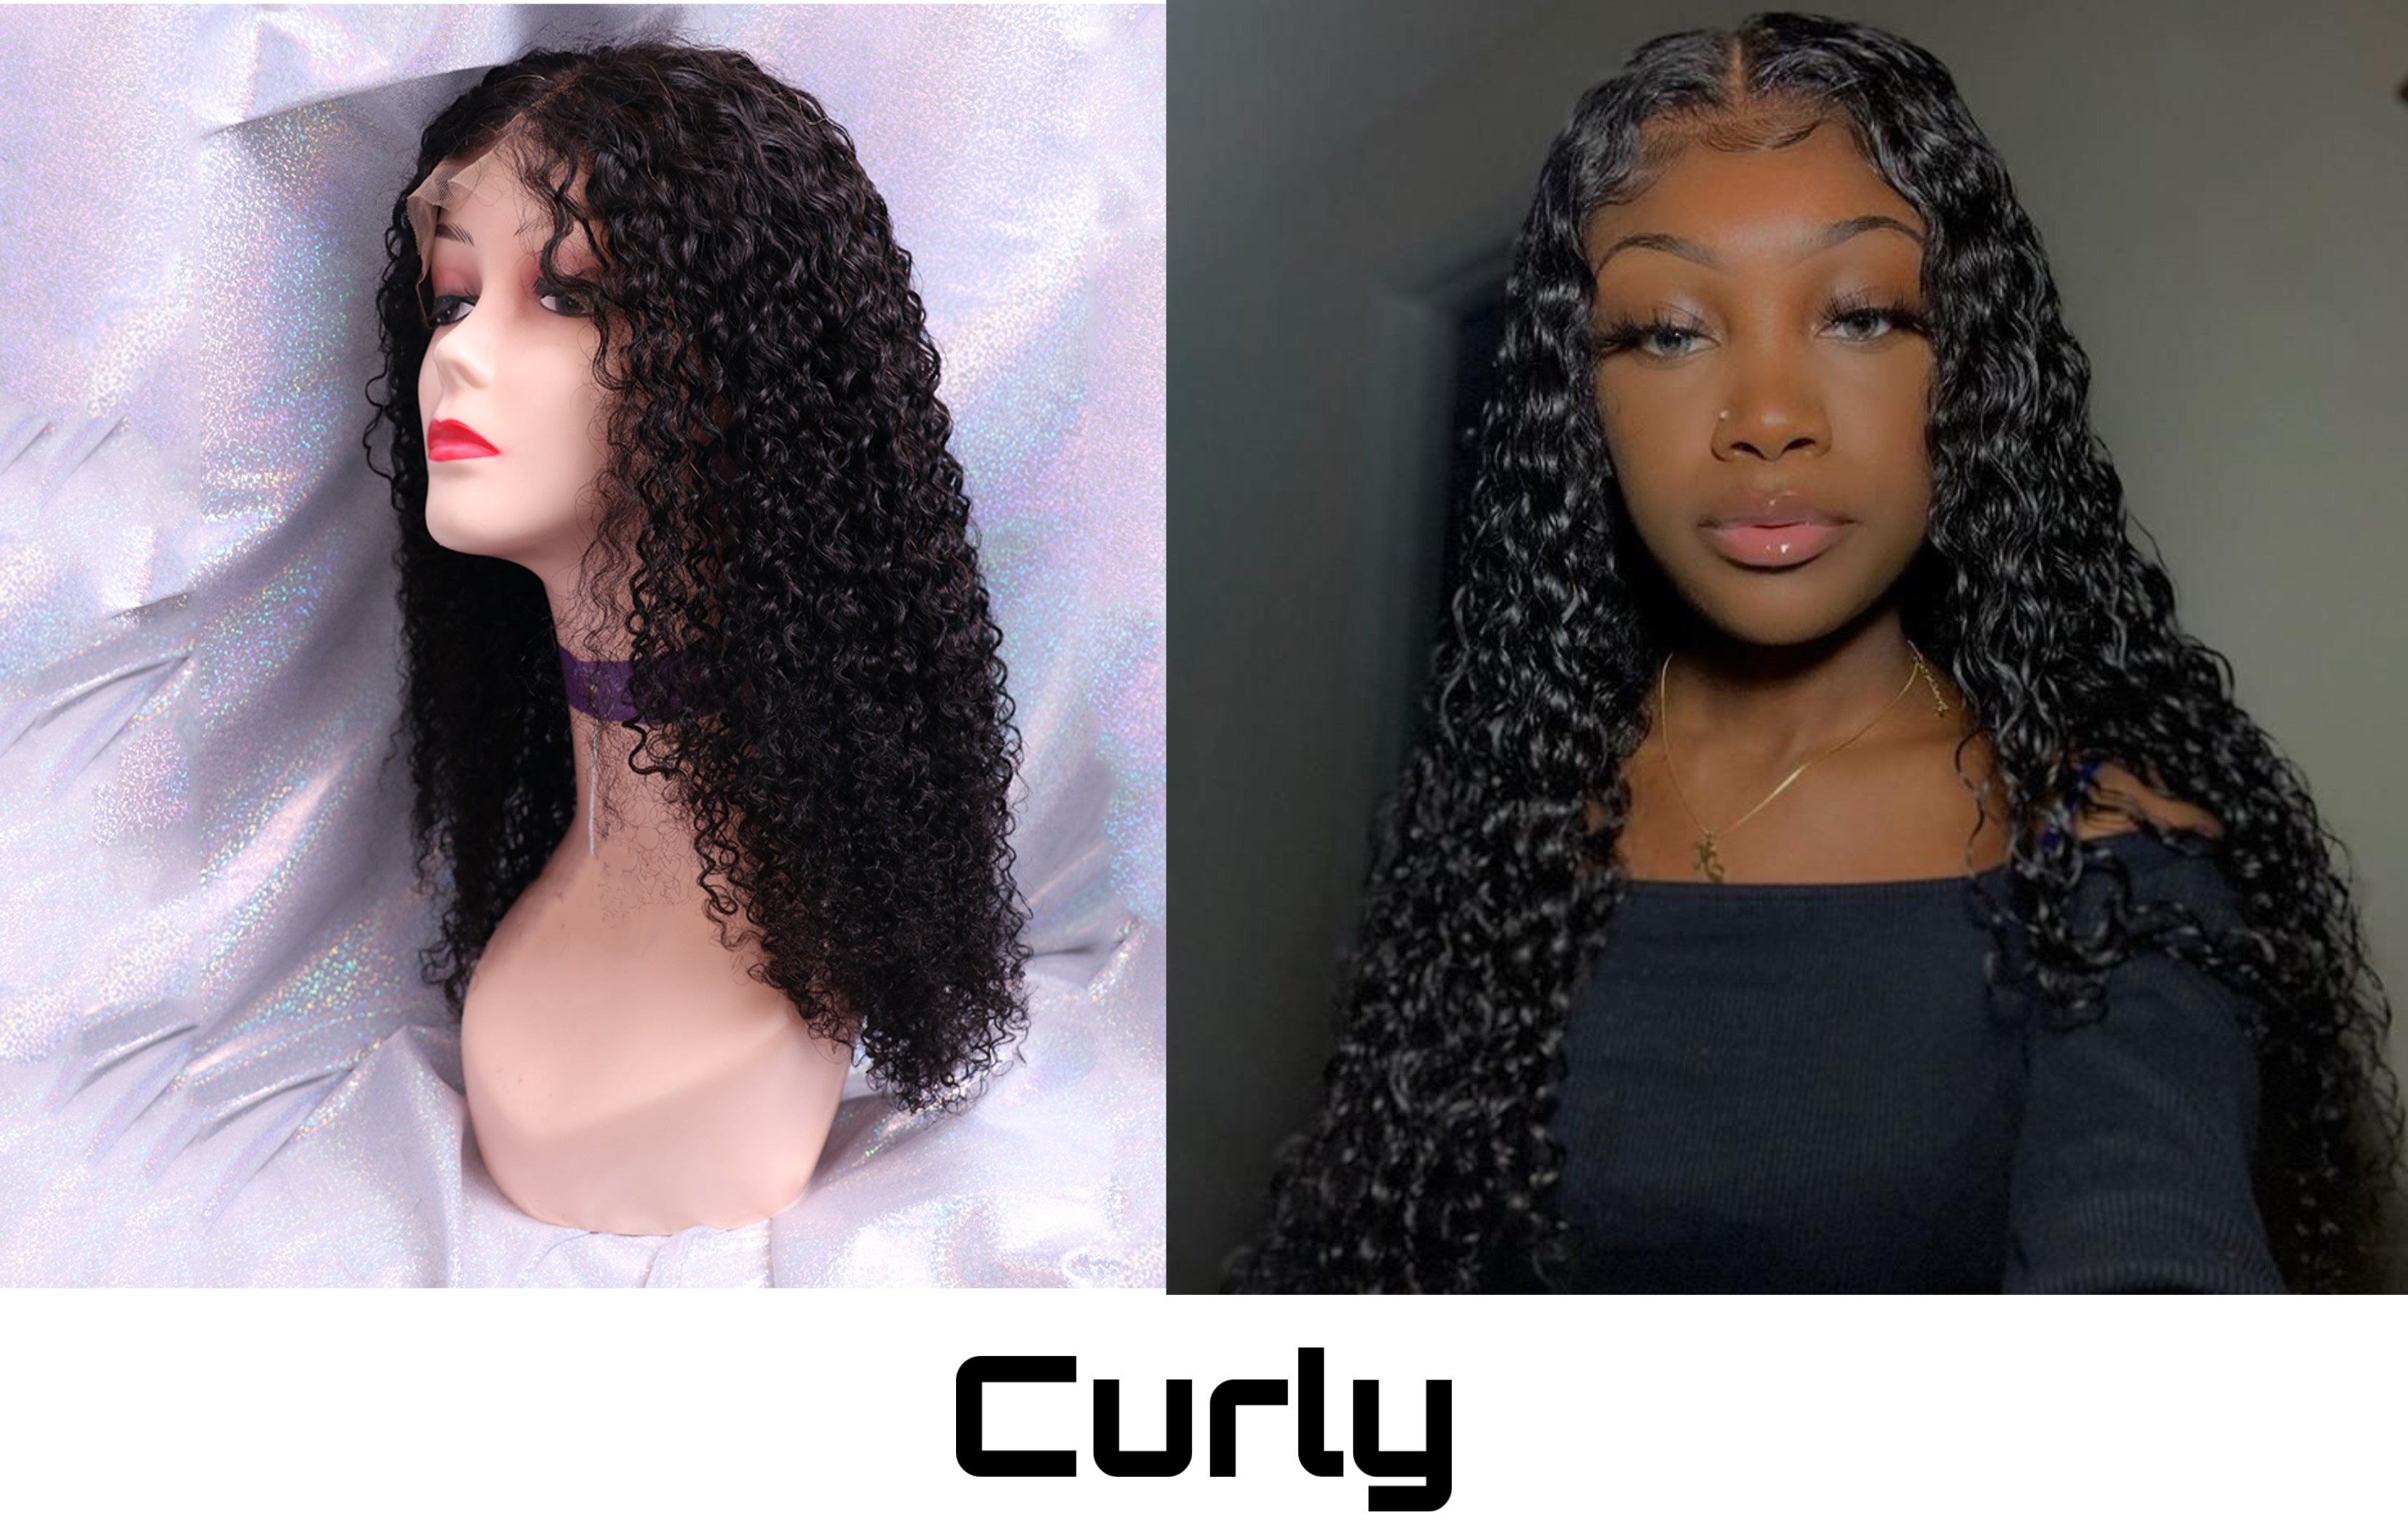 UEENLY CURLY WIG